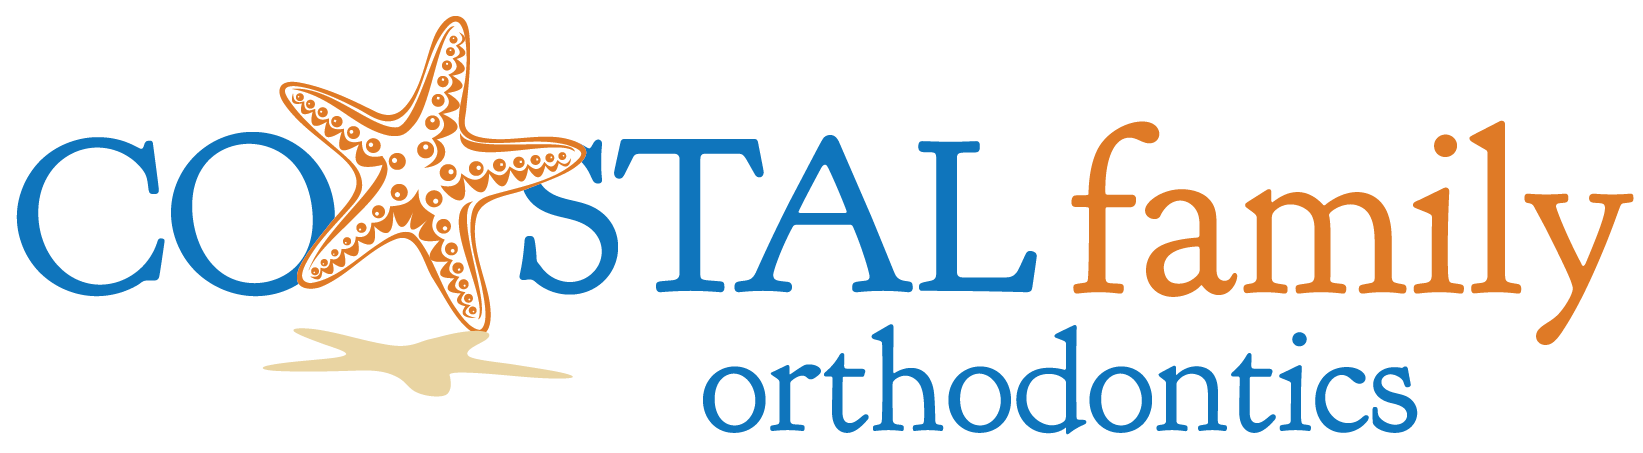 Coastal Kids Family Orthodontics